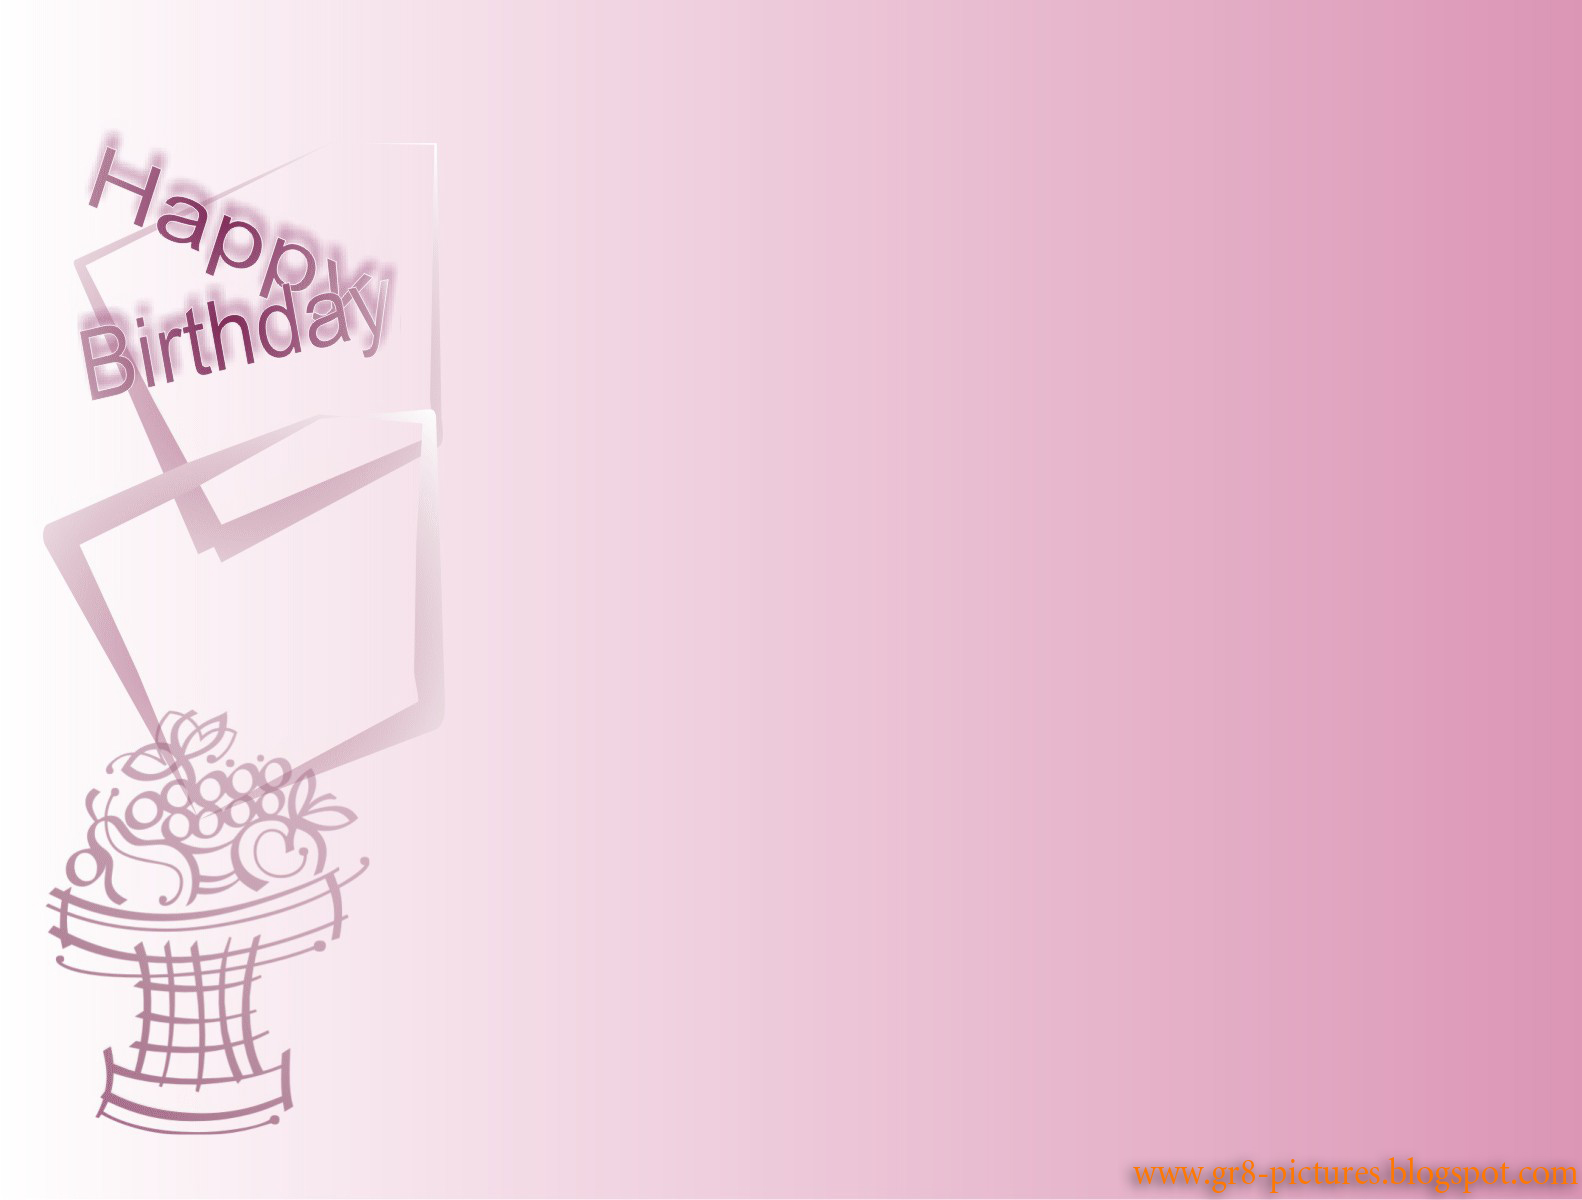 Hd wallpapers birthday - Happy birthday card wallpaper ...